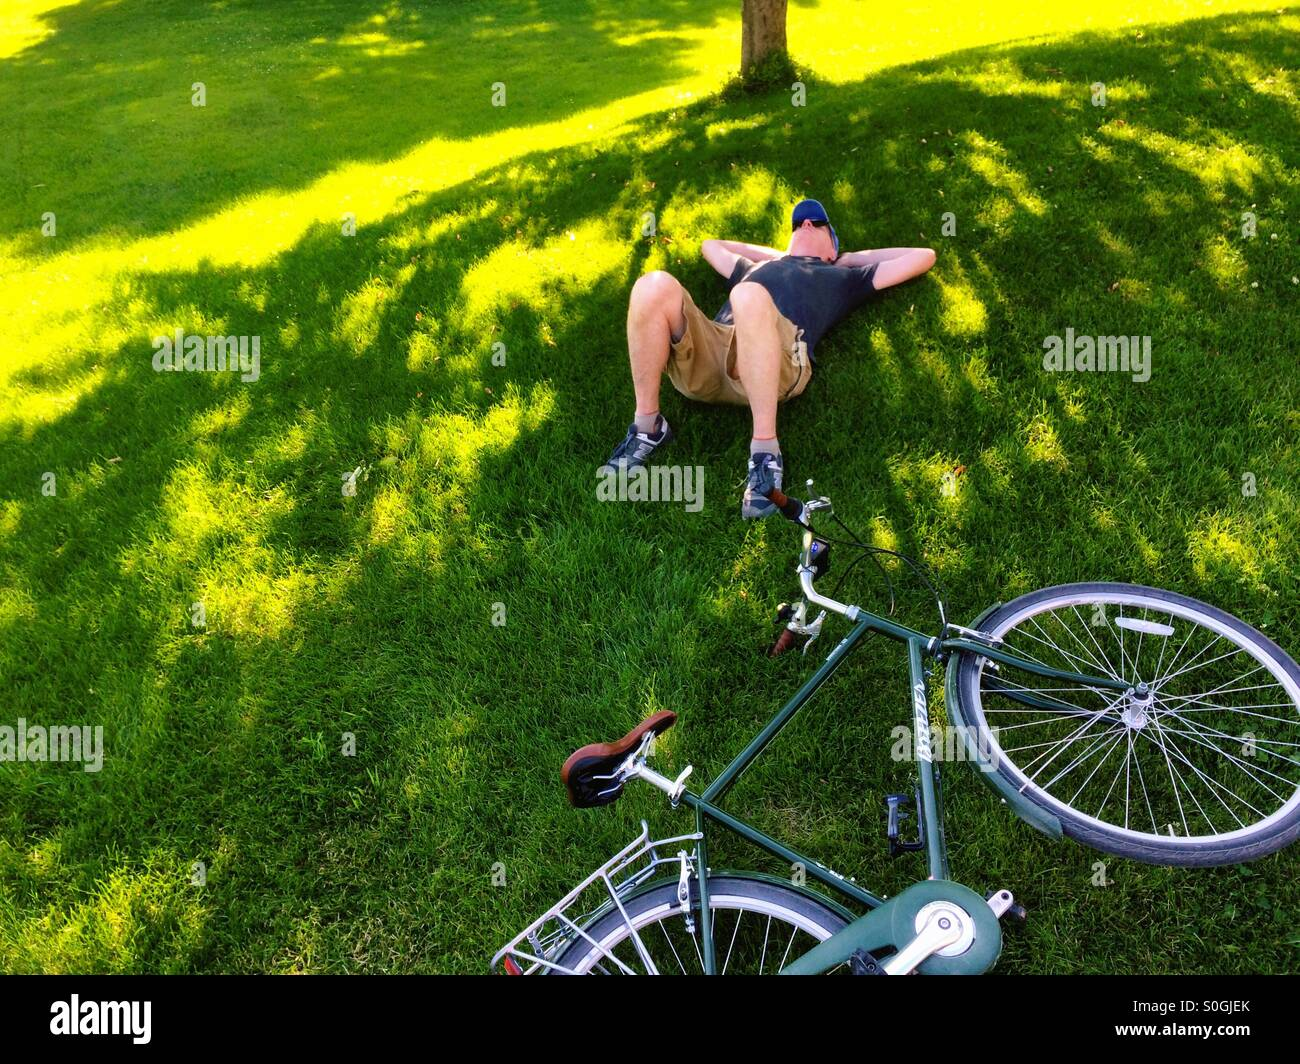 Man resting next to bike - Stock Image